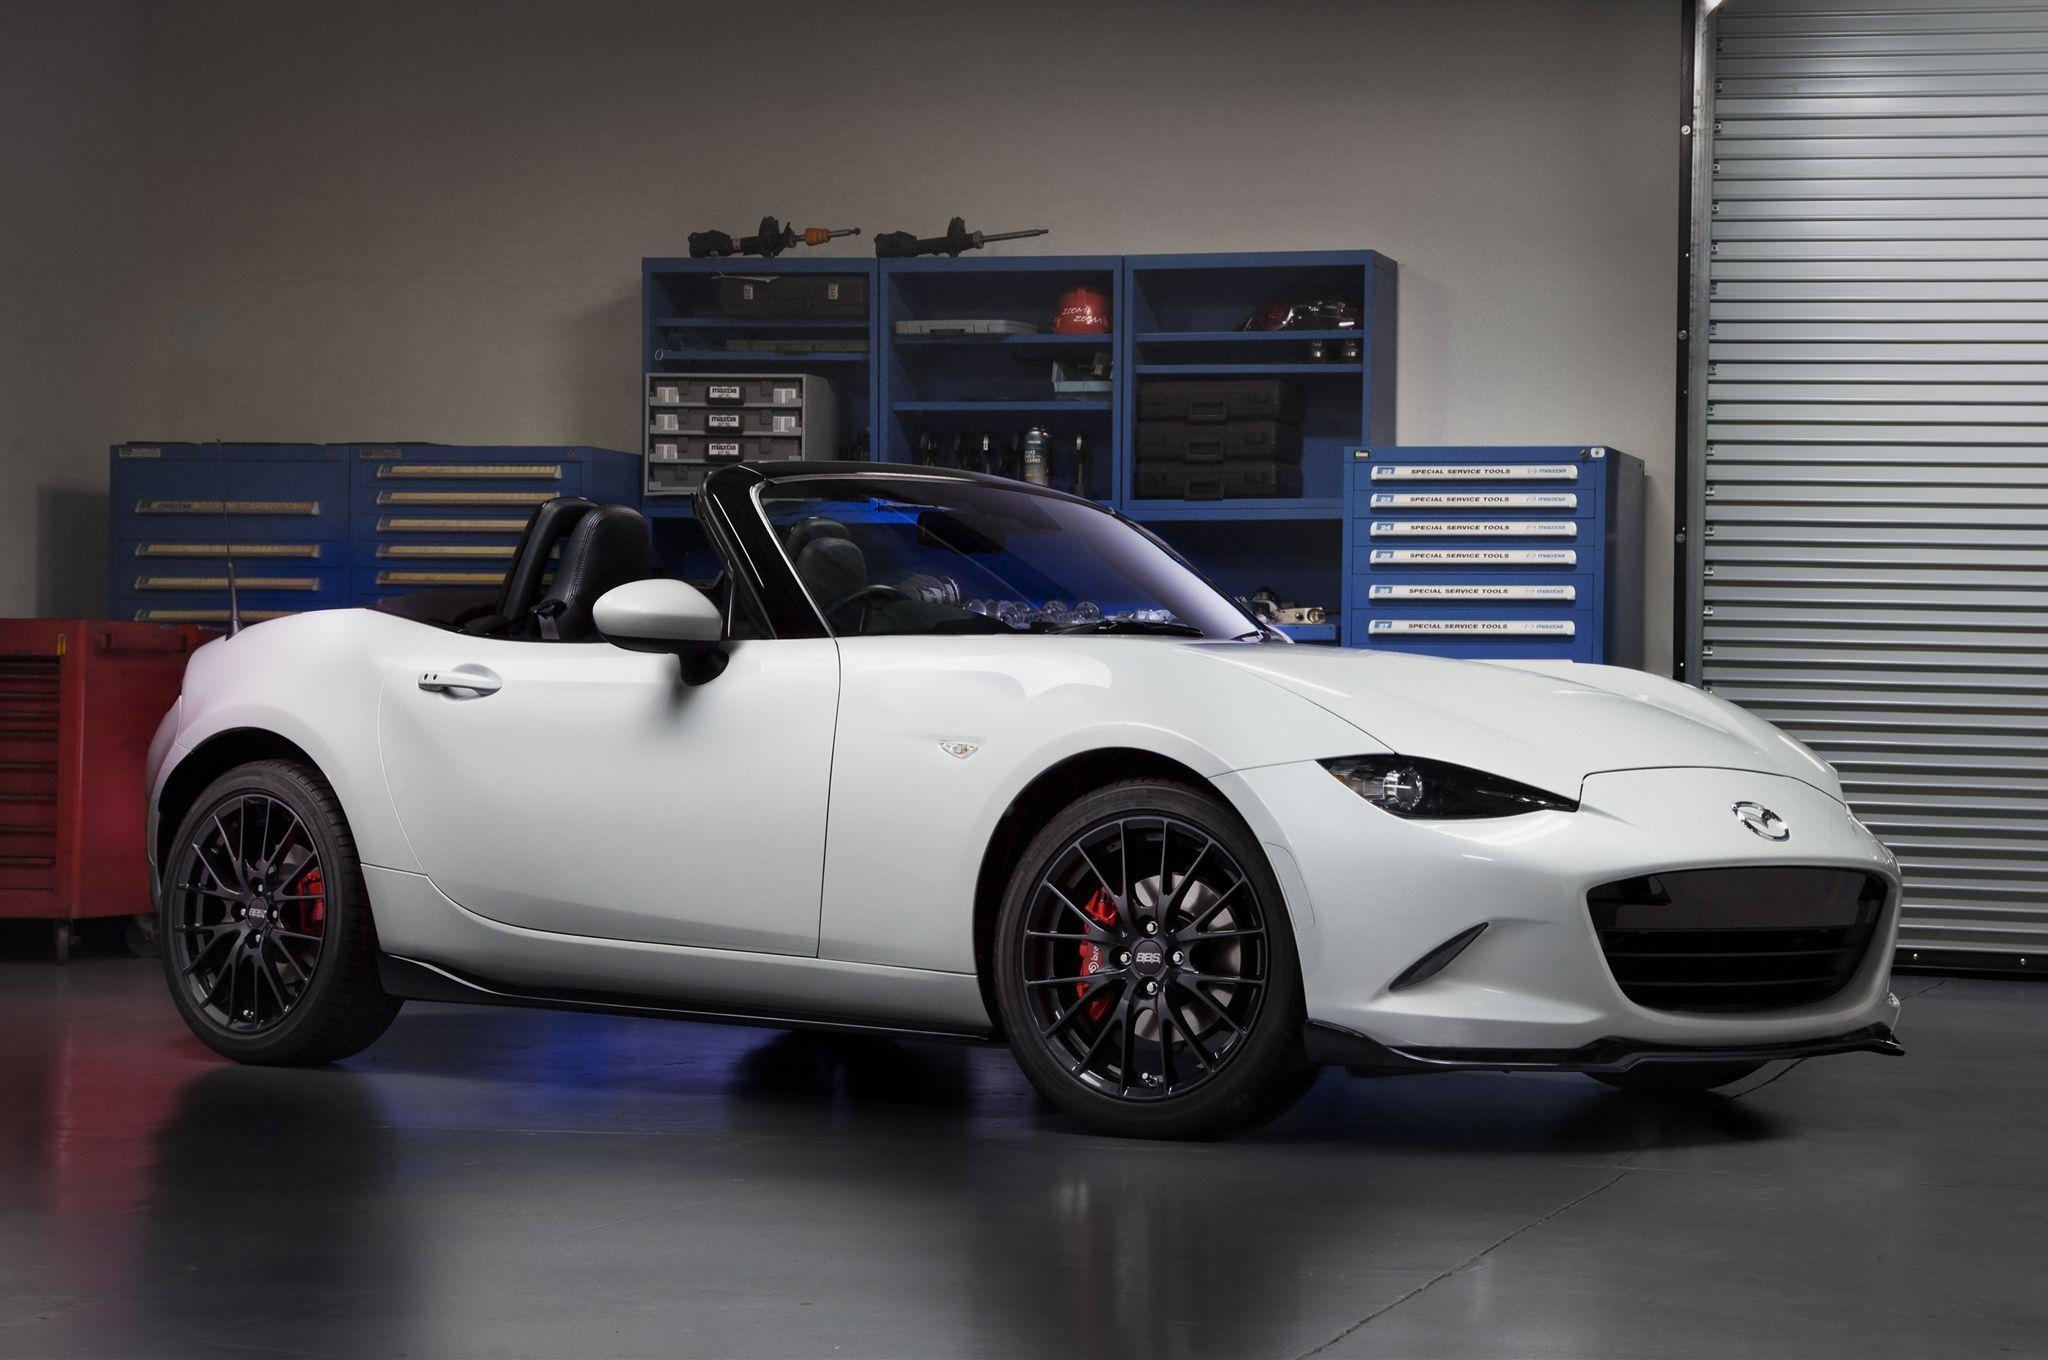 Mazda MX-5 Miata Wallpapers - Wallpaper Cave